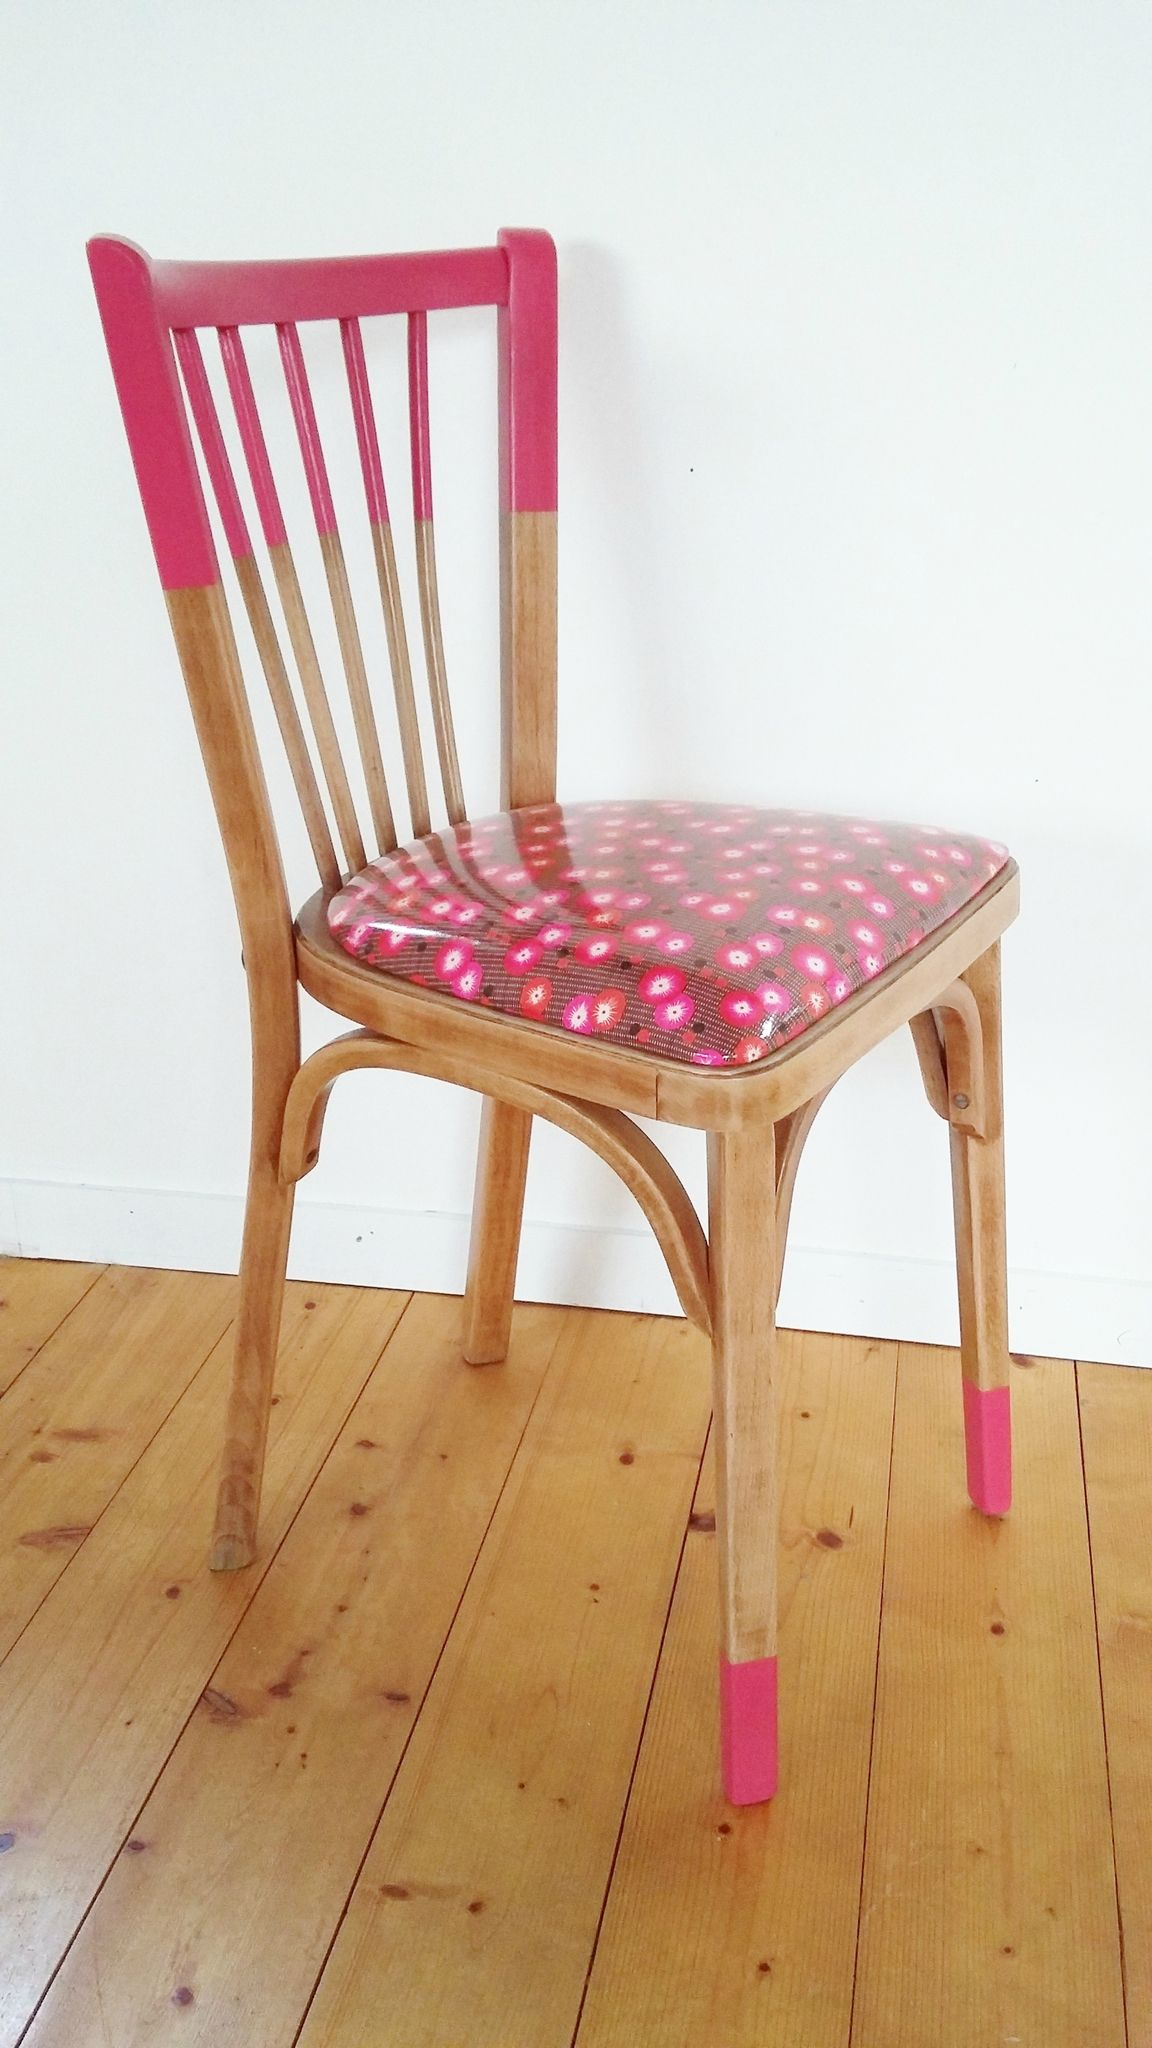 5 GREAT EXAMPLES OF FURNITURE TRANSFORMATION